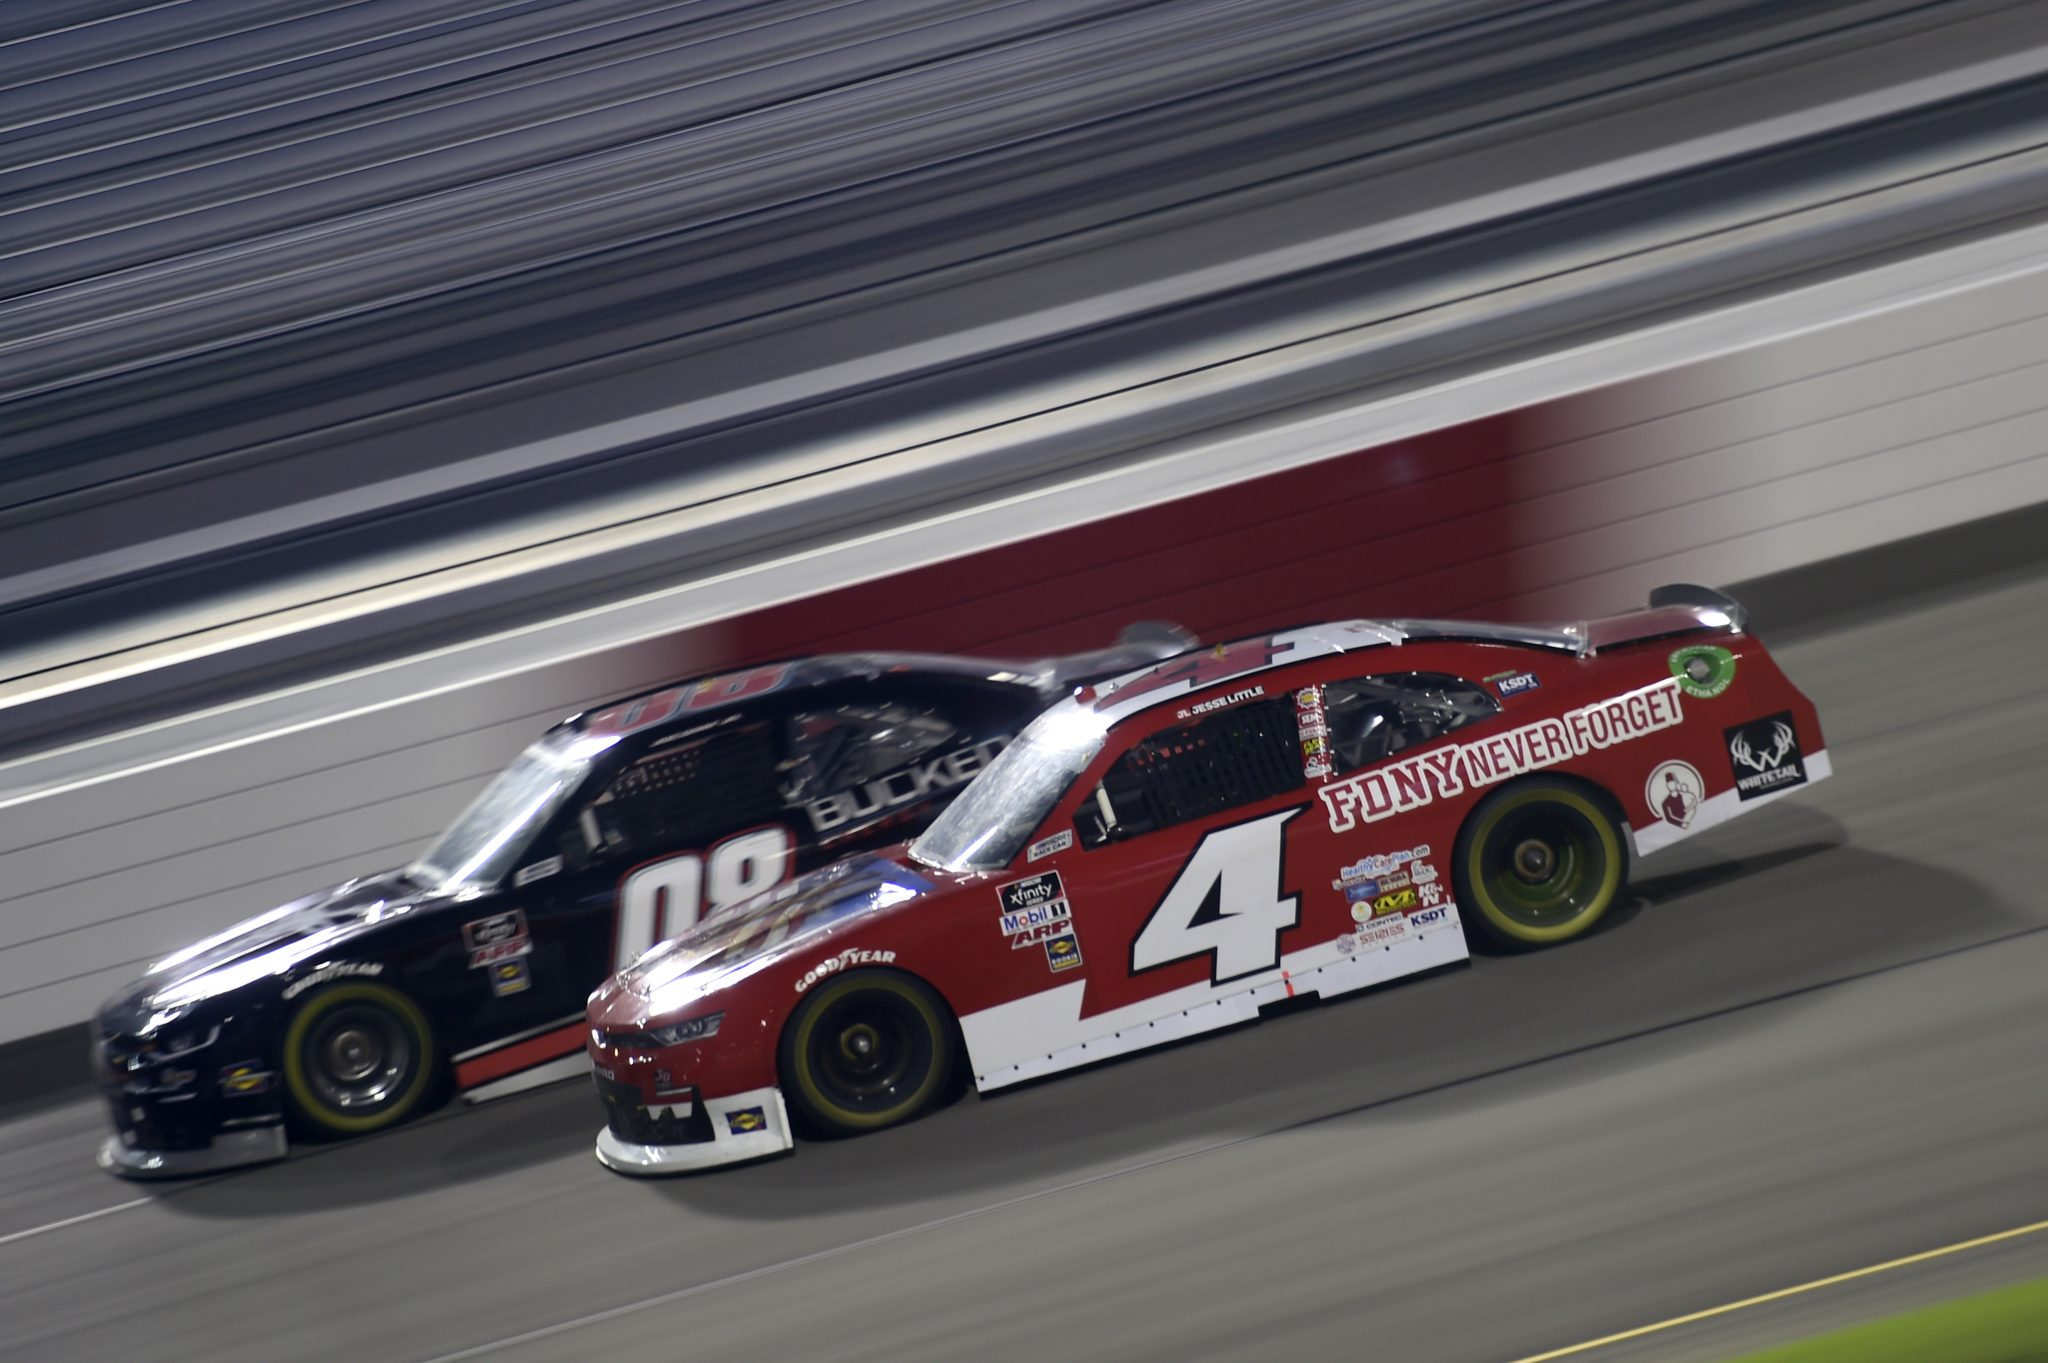 RICHMOND, VIRGINIA - SEPTEMBER 11: Jesse Little, driver of the #4 Shriners Hospitals Chevrolet, and Joe Graf Jr, driver of the #08 Bucked Up Energy Chevrolet, race during the NASCAR Xfinity Series Go Bowling 250 at Richmond Raceway on September 11, 2020 in Richmond, Virginia. (Photo by Jared C. Tilton/Getty Images) | Getty Images